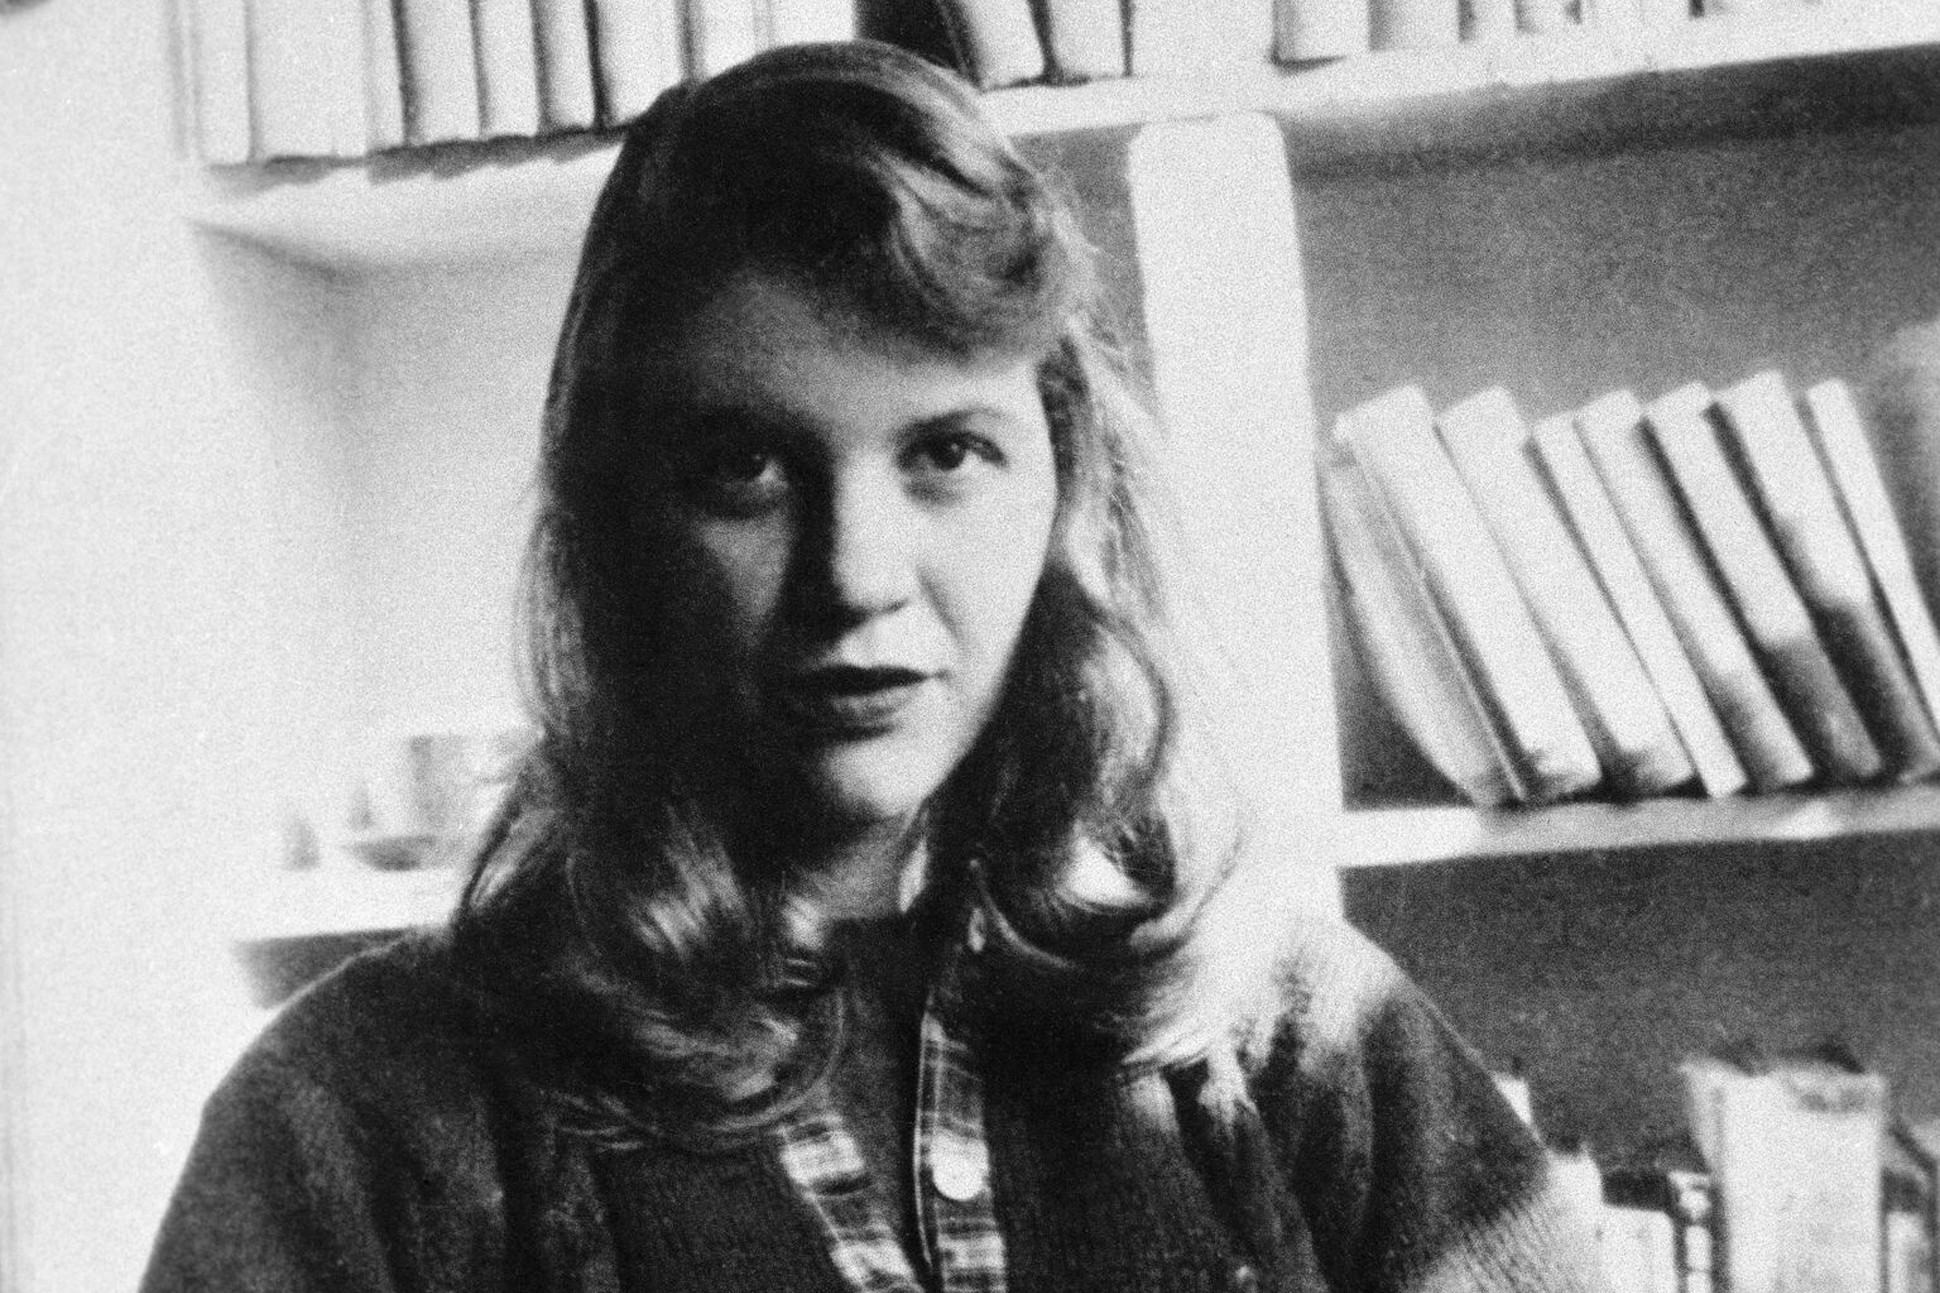 Black and white photograph of Sylvia Plath